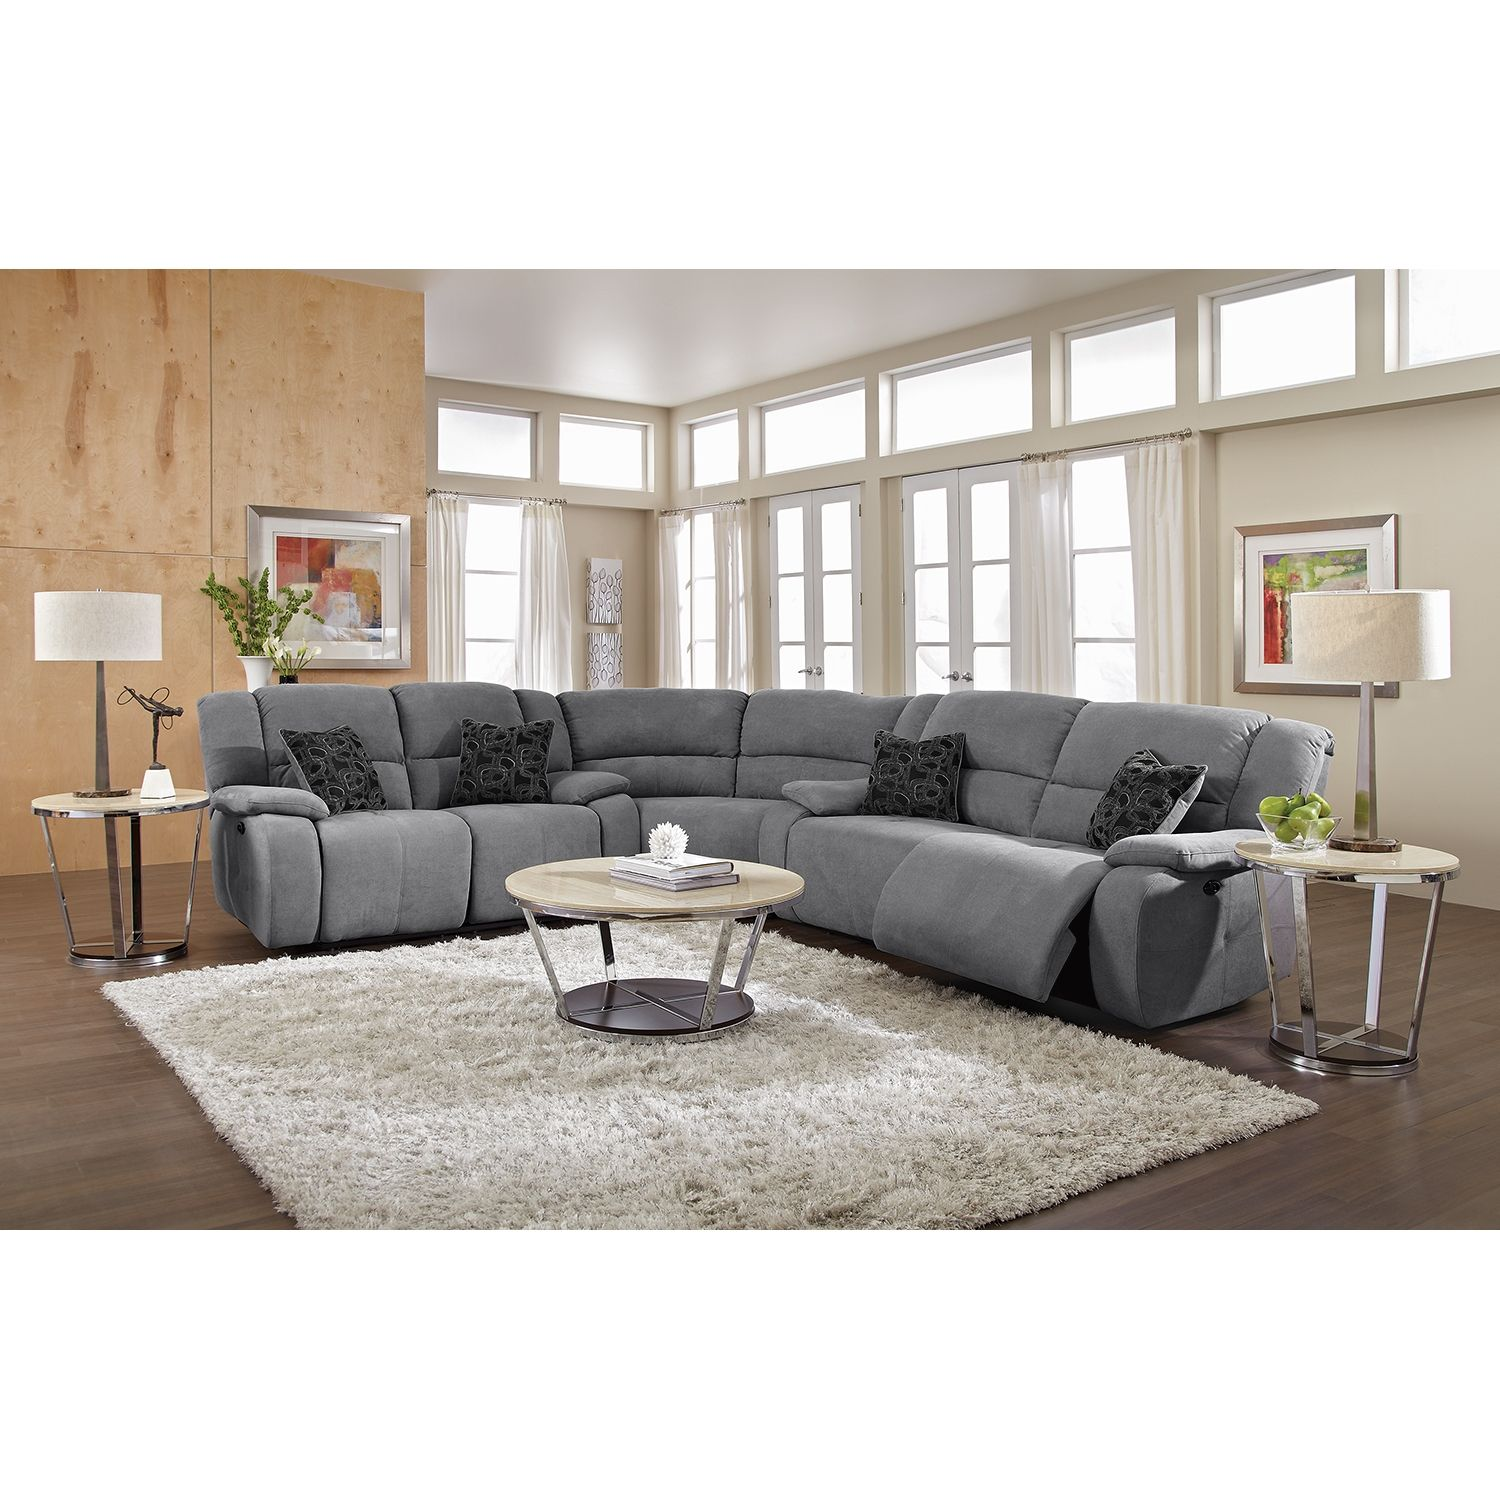 Love this couch gray is awesome future living room pinterest living room furniture Living room loveseats